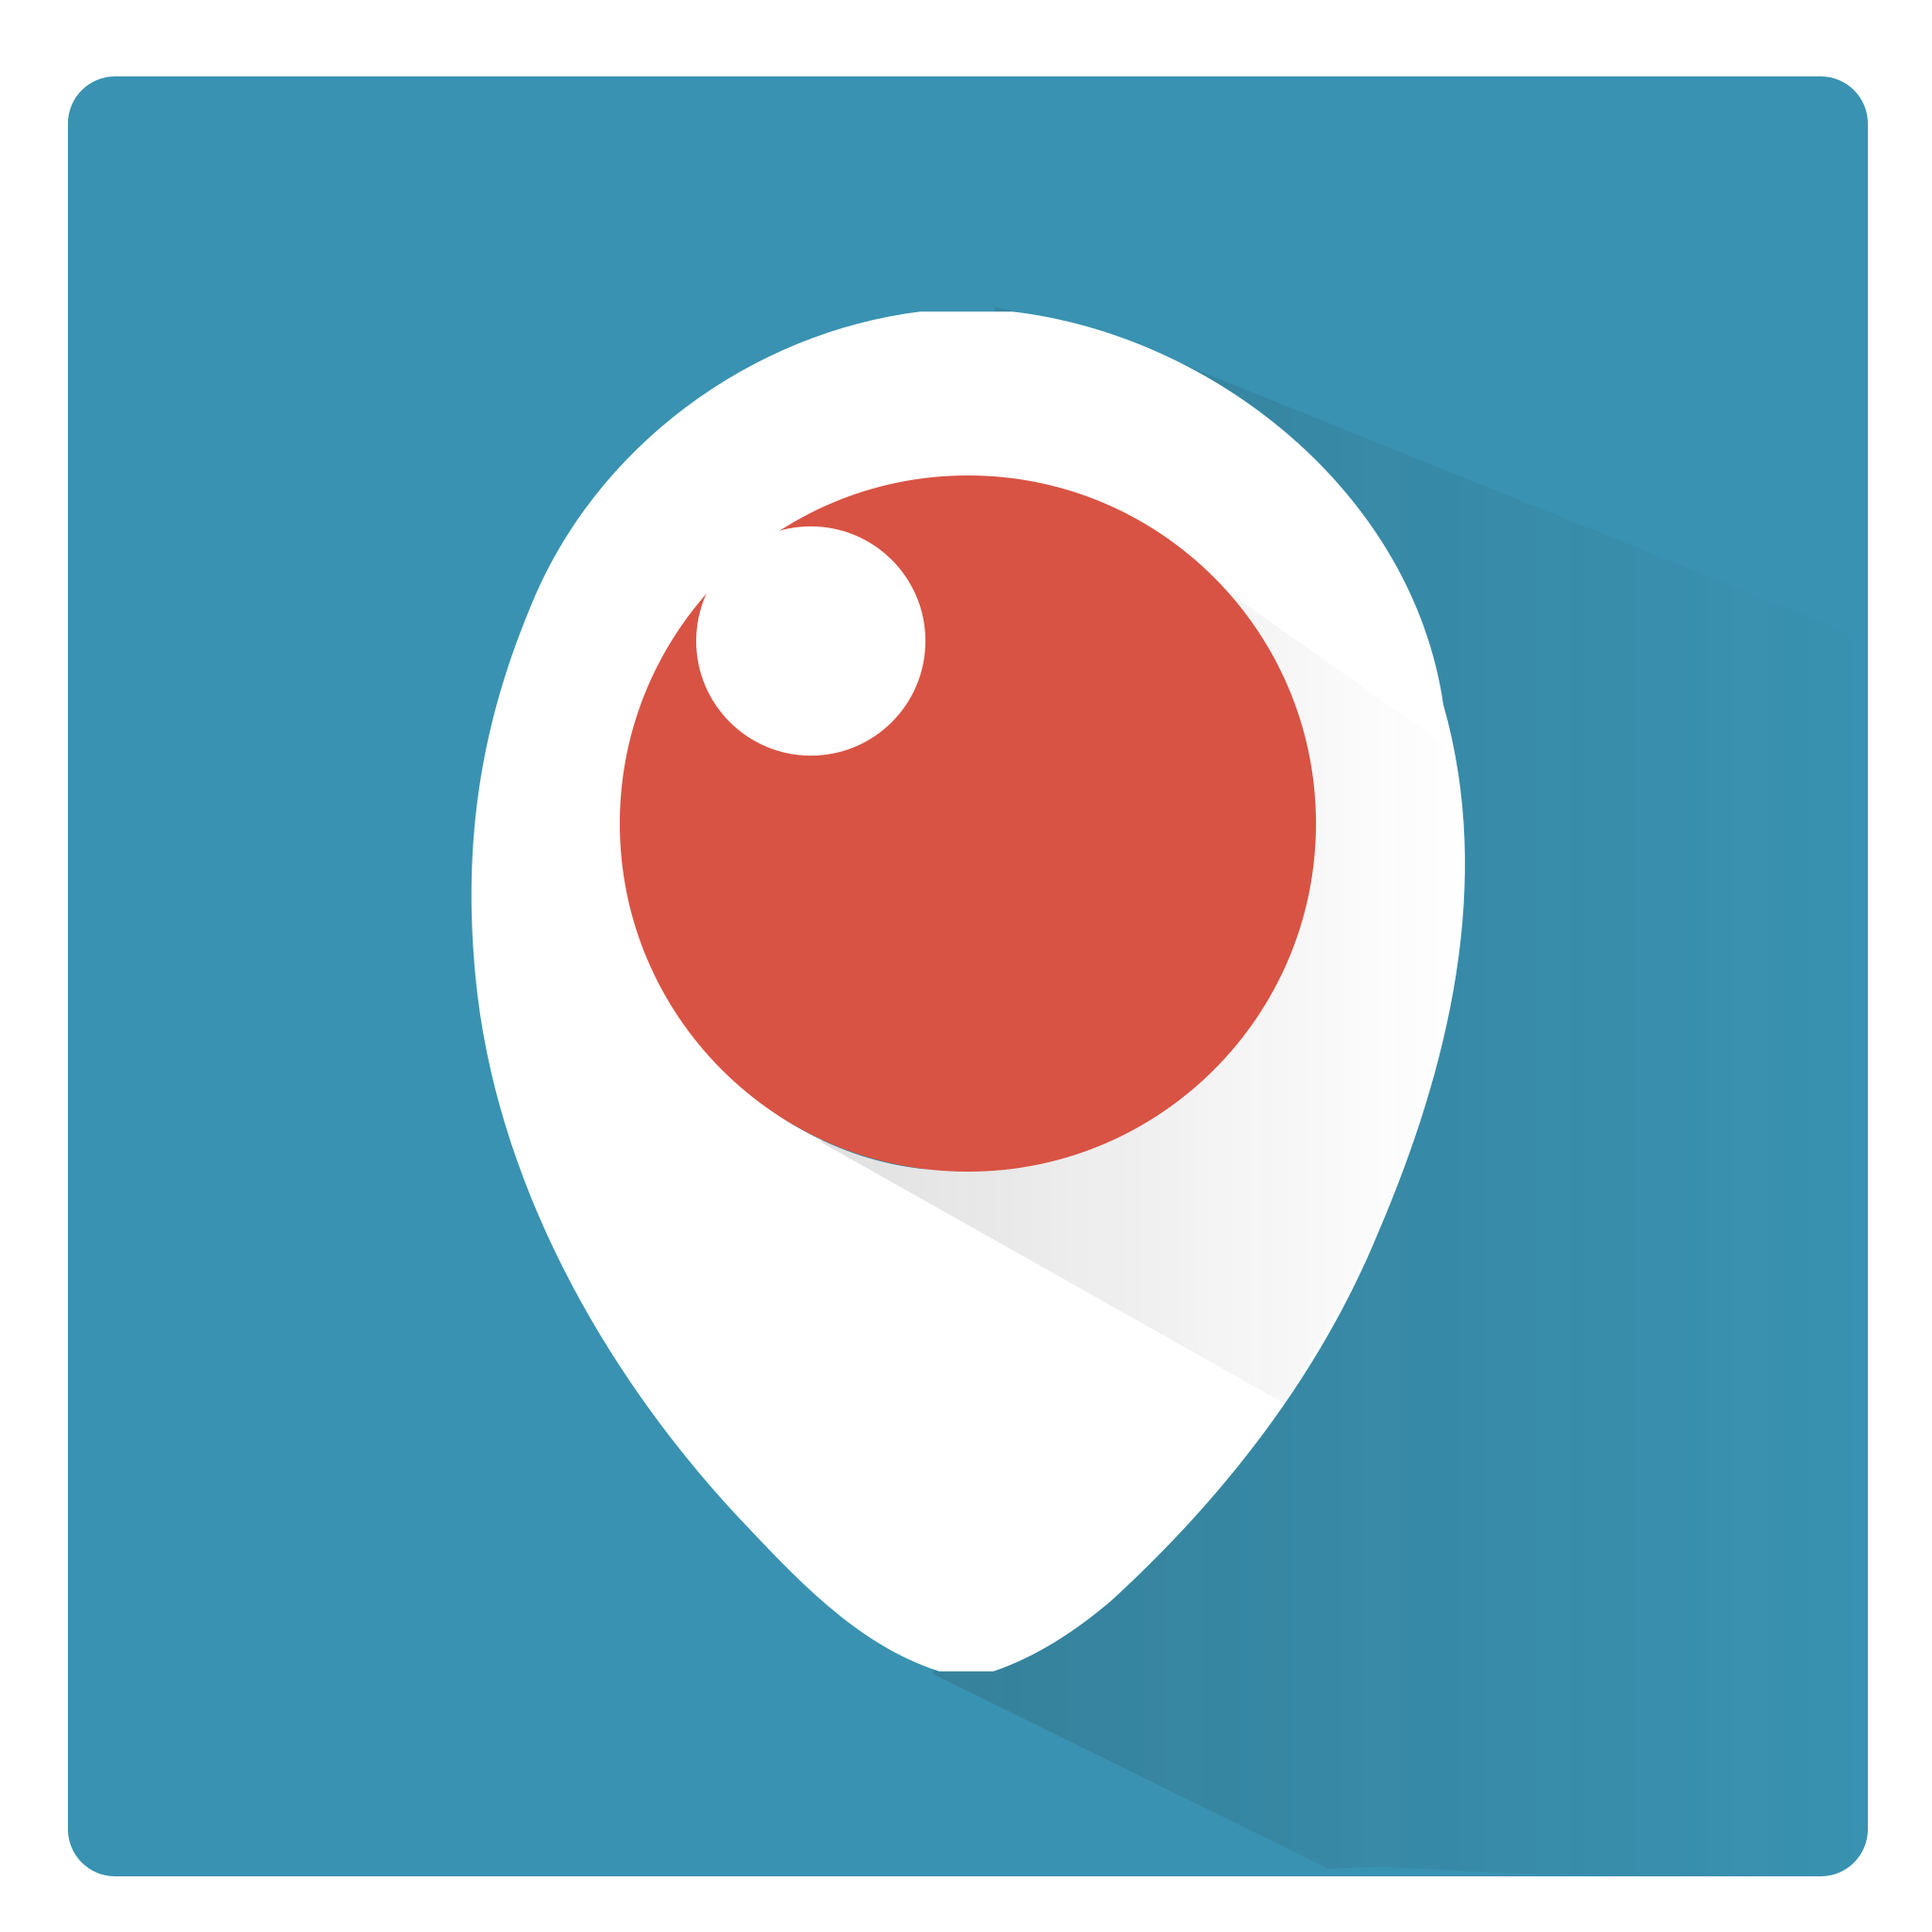 periscope logo png photo #1965